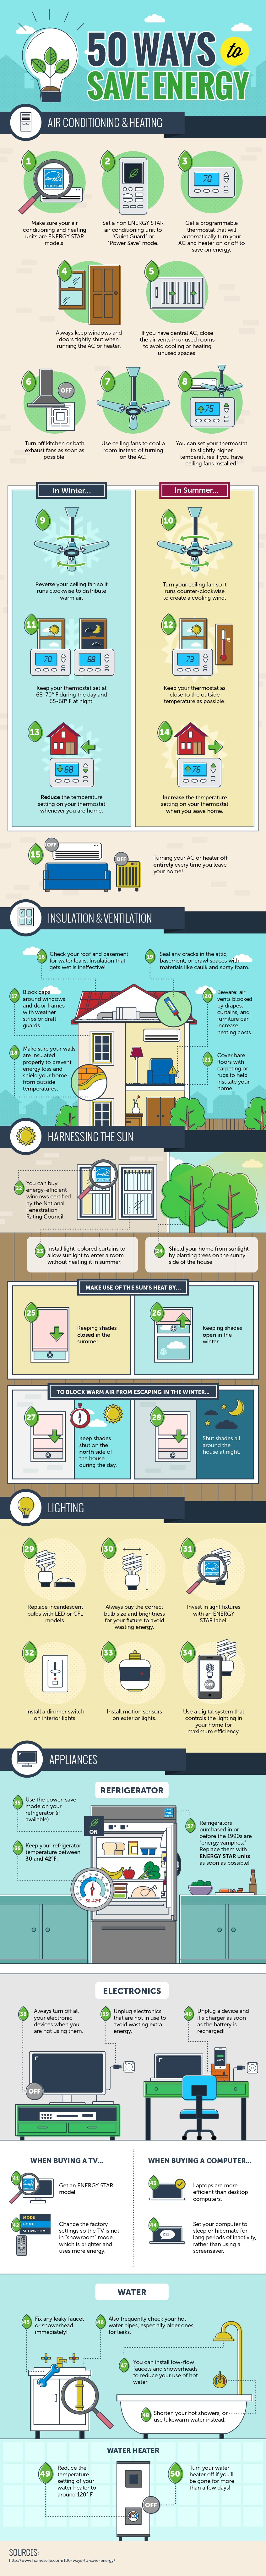 50 Ways to Save Energy